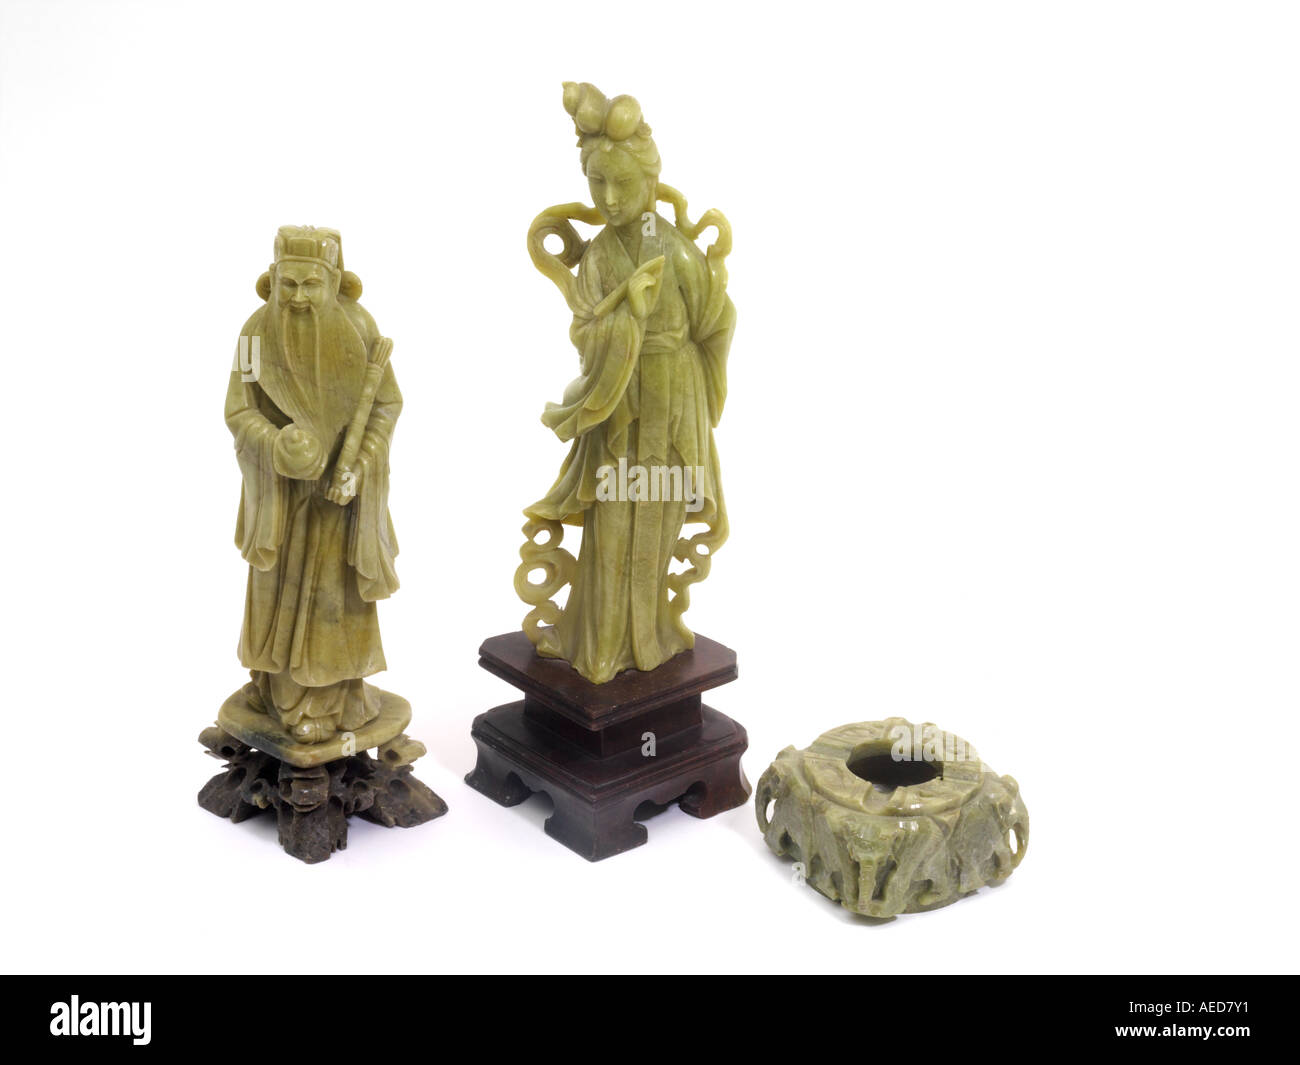 Chinese Jade  Ashtray Jade Jewellery and Sculptures Kuan Yin Bodhisattva of Compassion and Wen Ch'ang - Stock Image